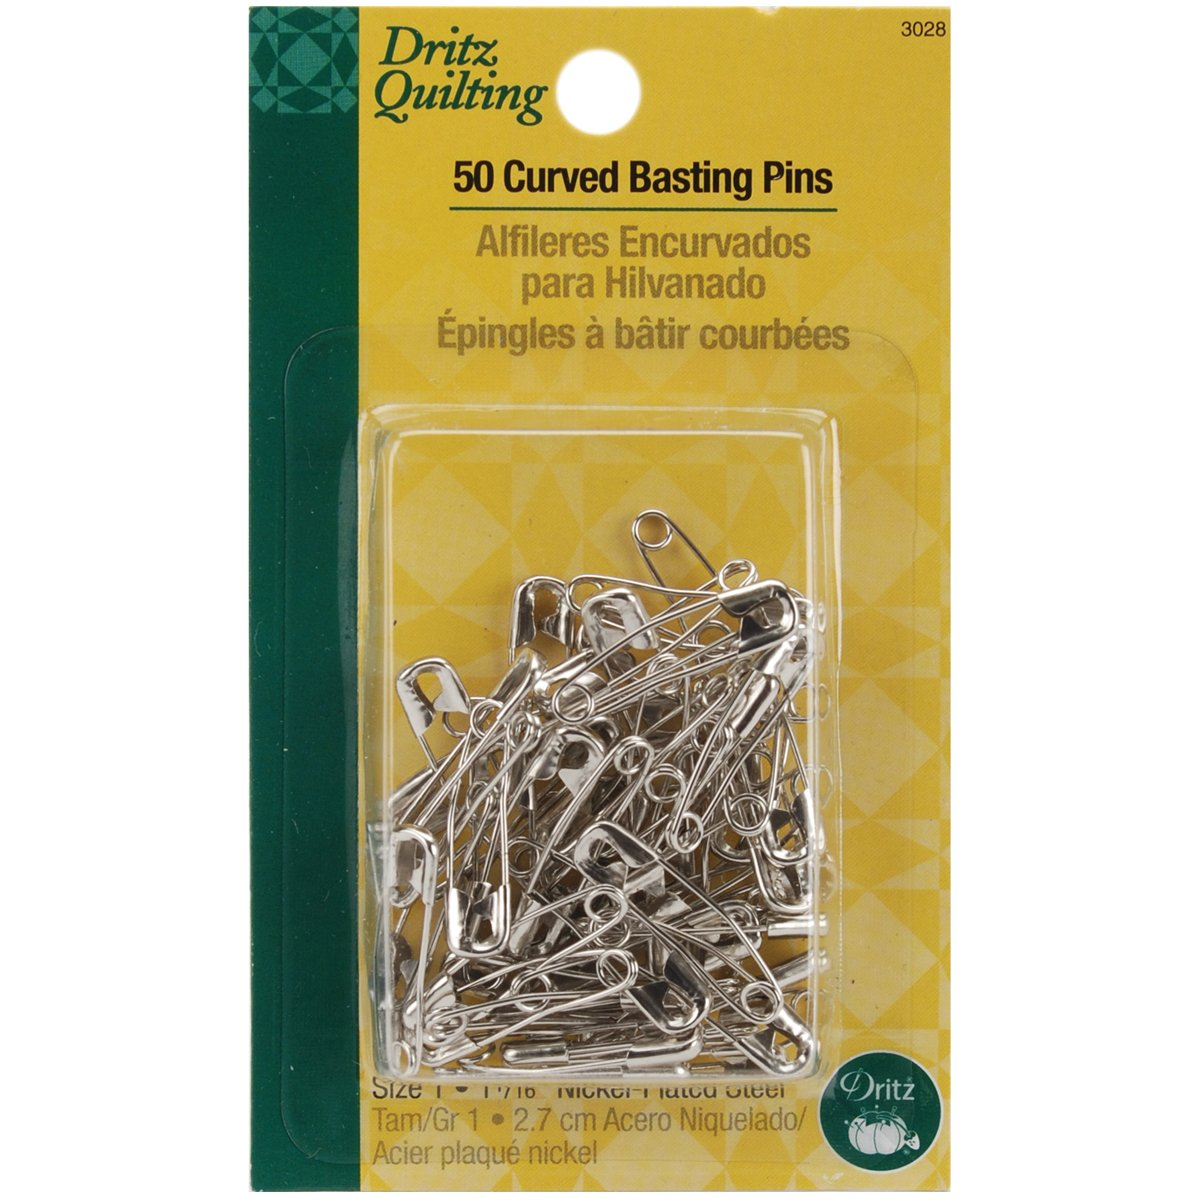 Dritz Quilting 3028 Curved Basting Pins, Size 1, 50 Count, Steel Size 1